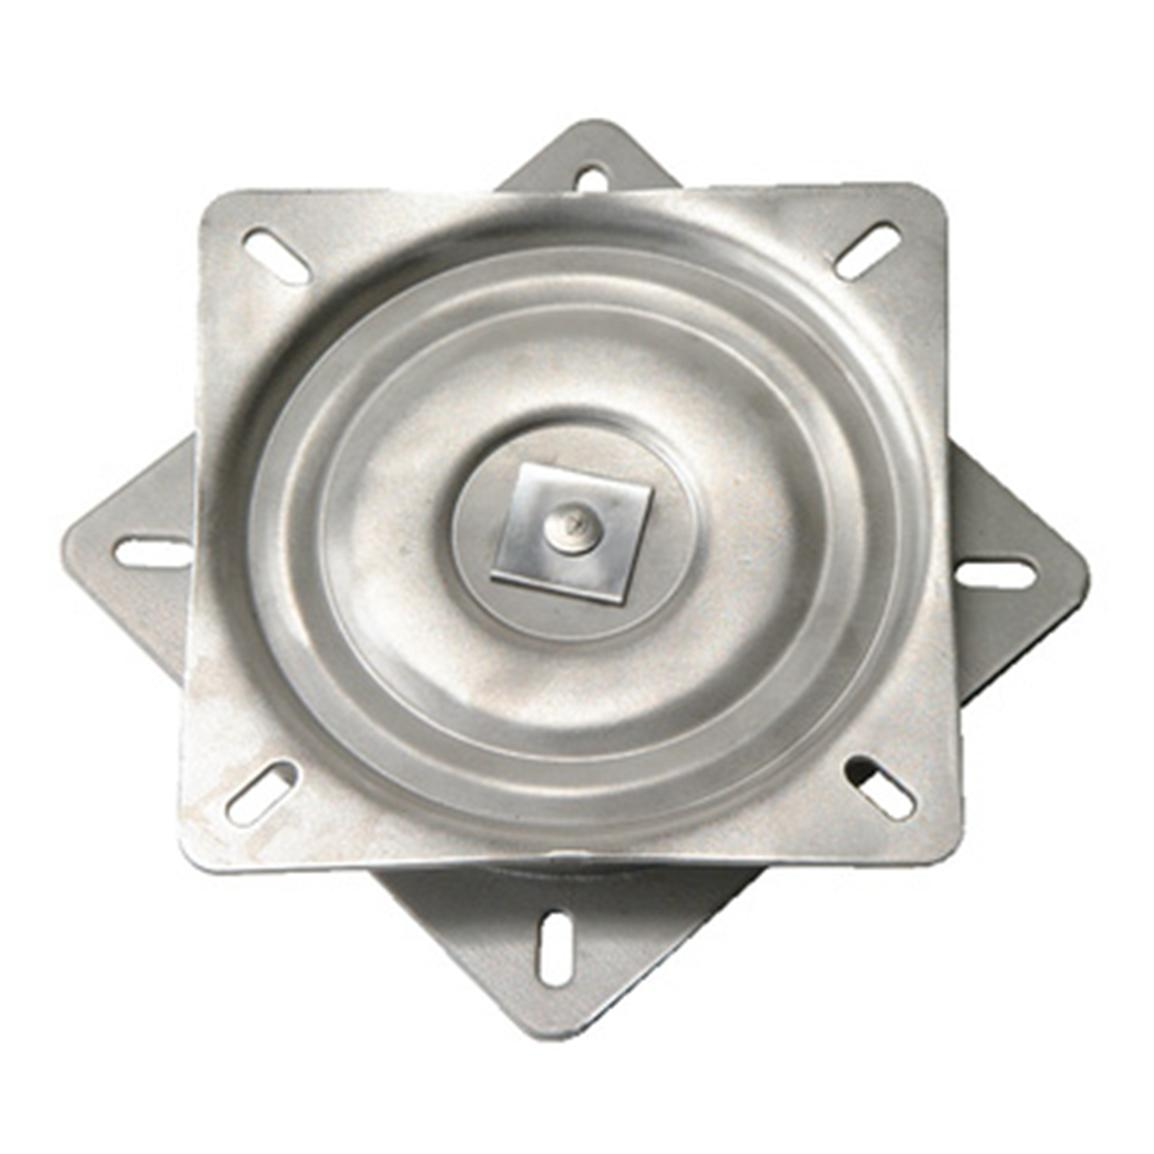 Stainless Steel Seat Swivel  171755 Boat Seat